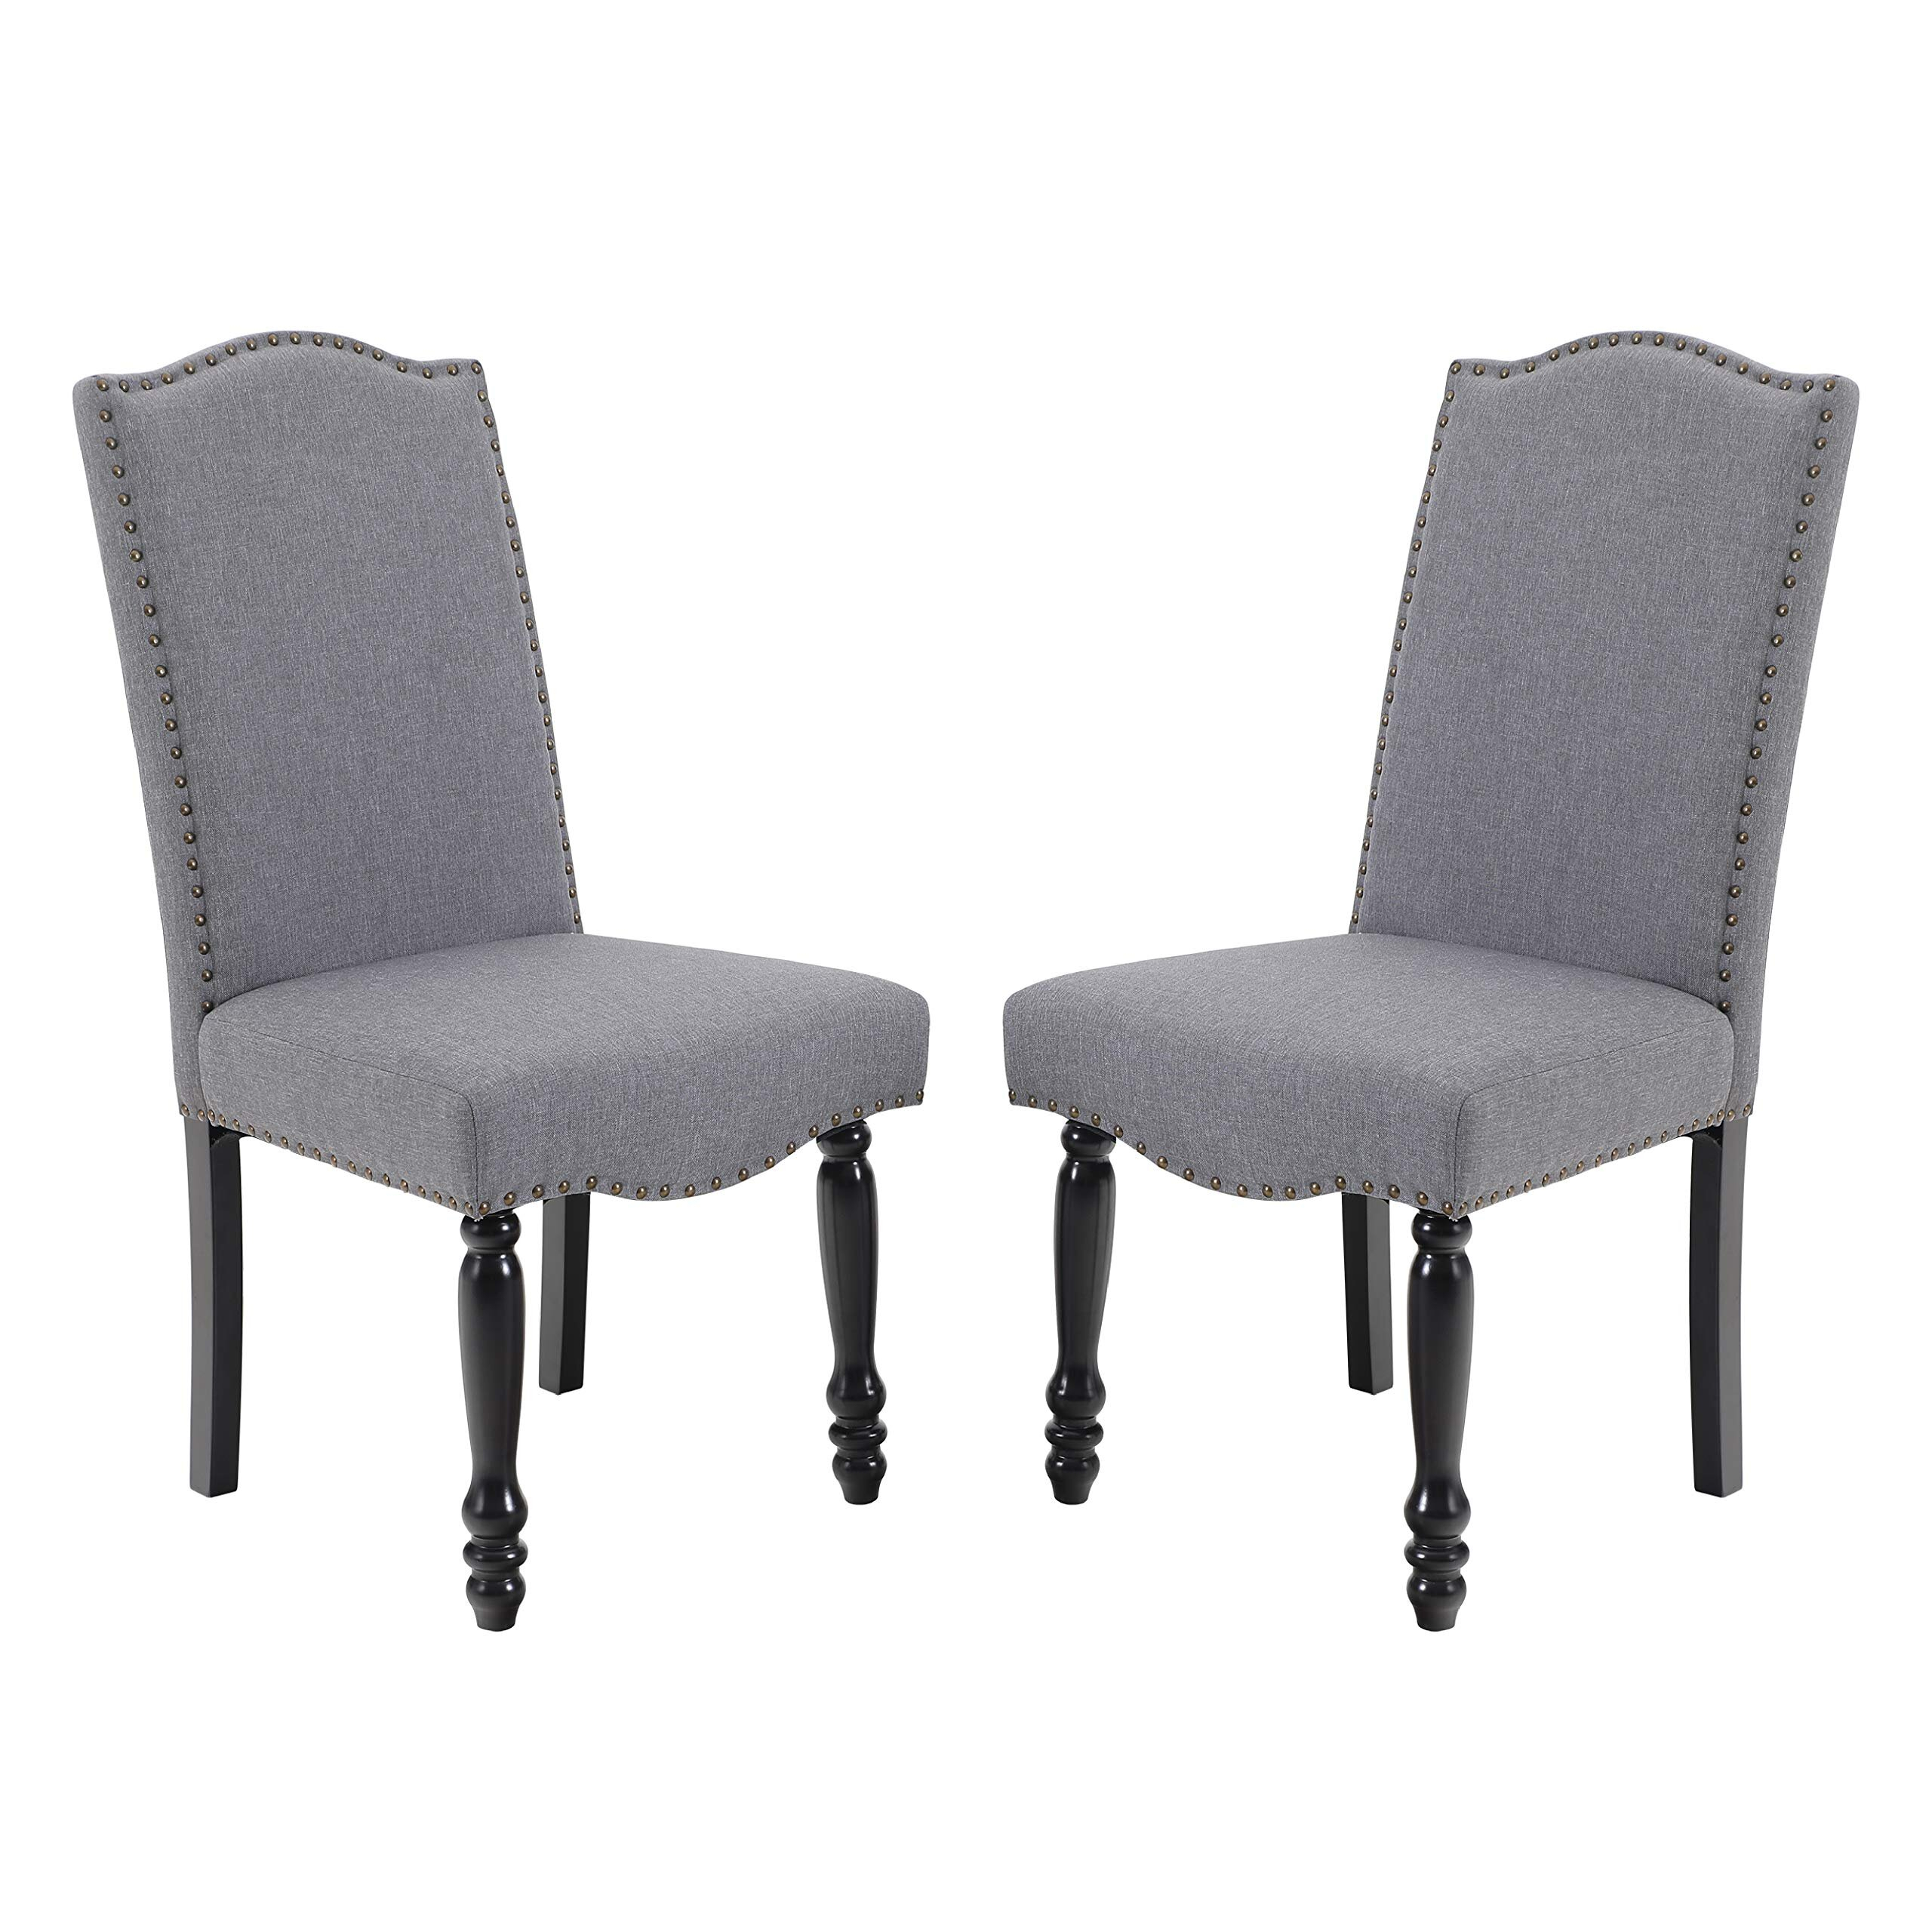 Dark Gray Side Accent Chairs You'Ll Love In 2021 | Wayfair With Madison Avenue Tufted Cotton Upholstered Dining Chairs (Set Of 2) (View 2 of 15)